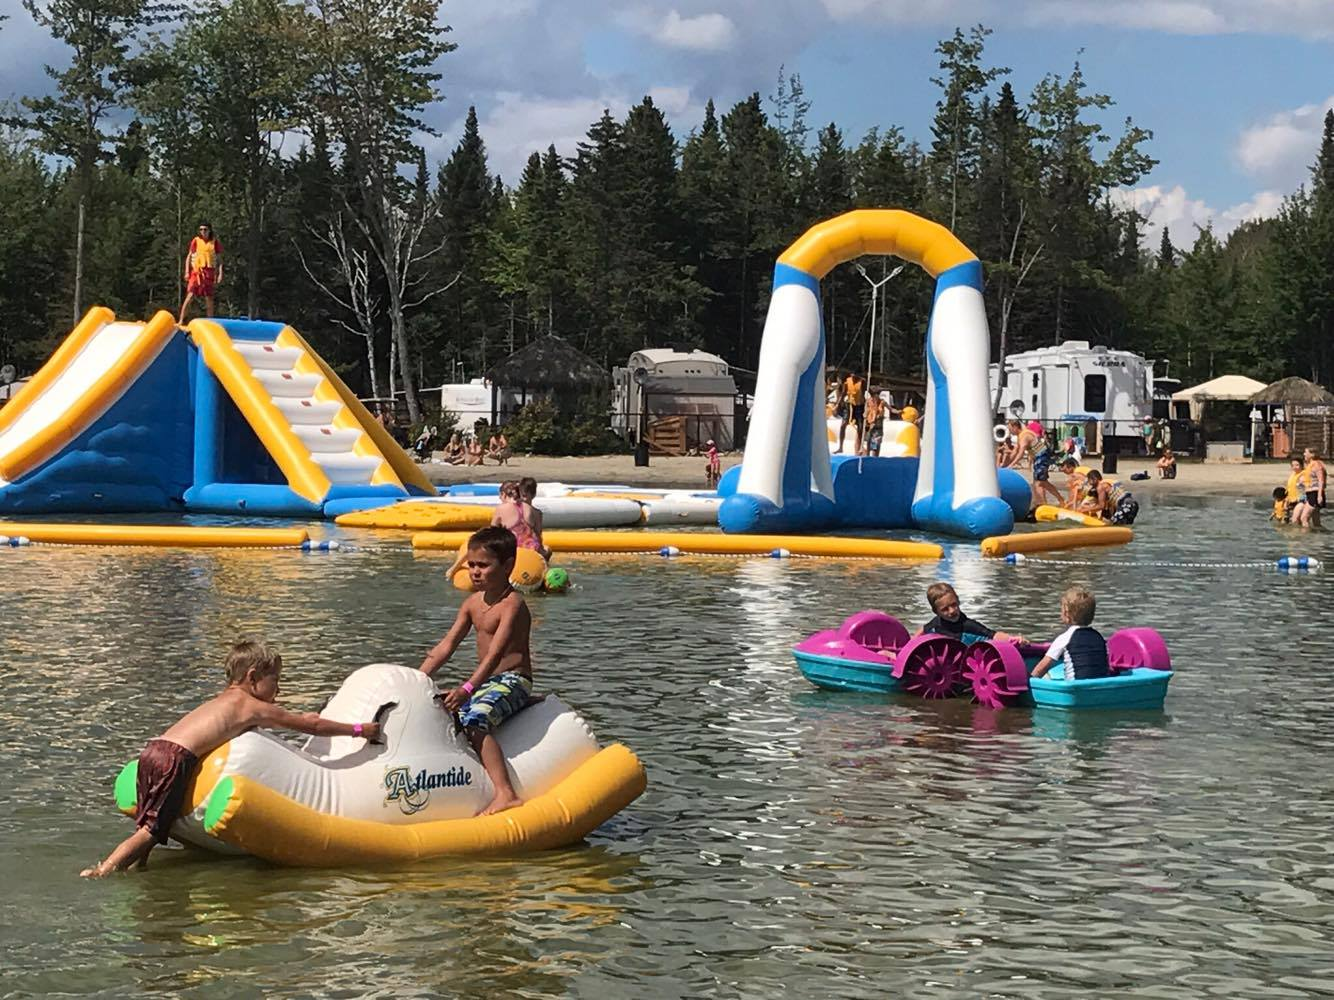 https://www.familizoo.com/ENG/wp-content/uploads/2019/01/beach-party-2017-complexe-atlantide-9.jpg